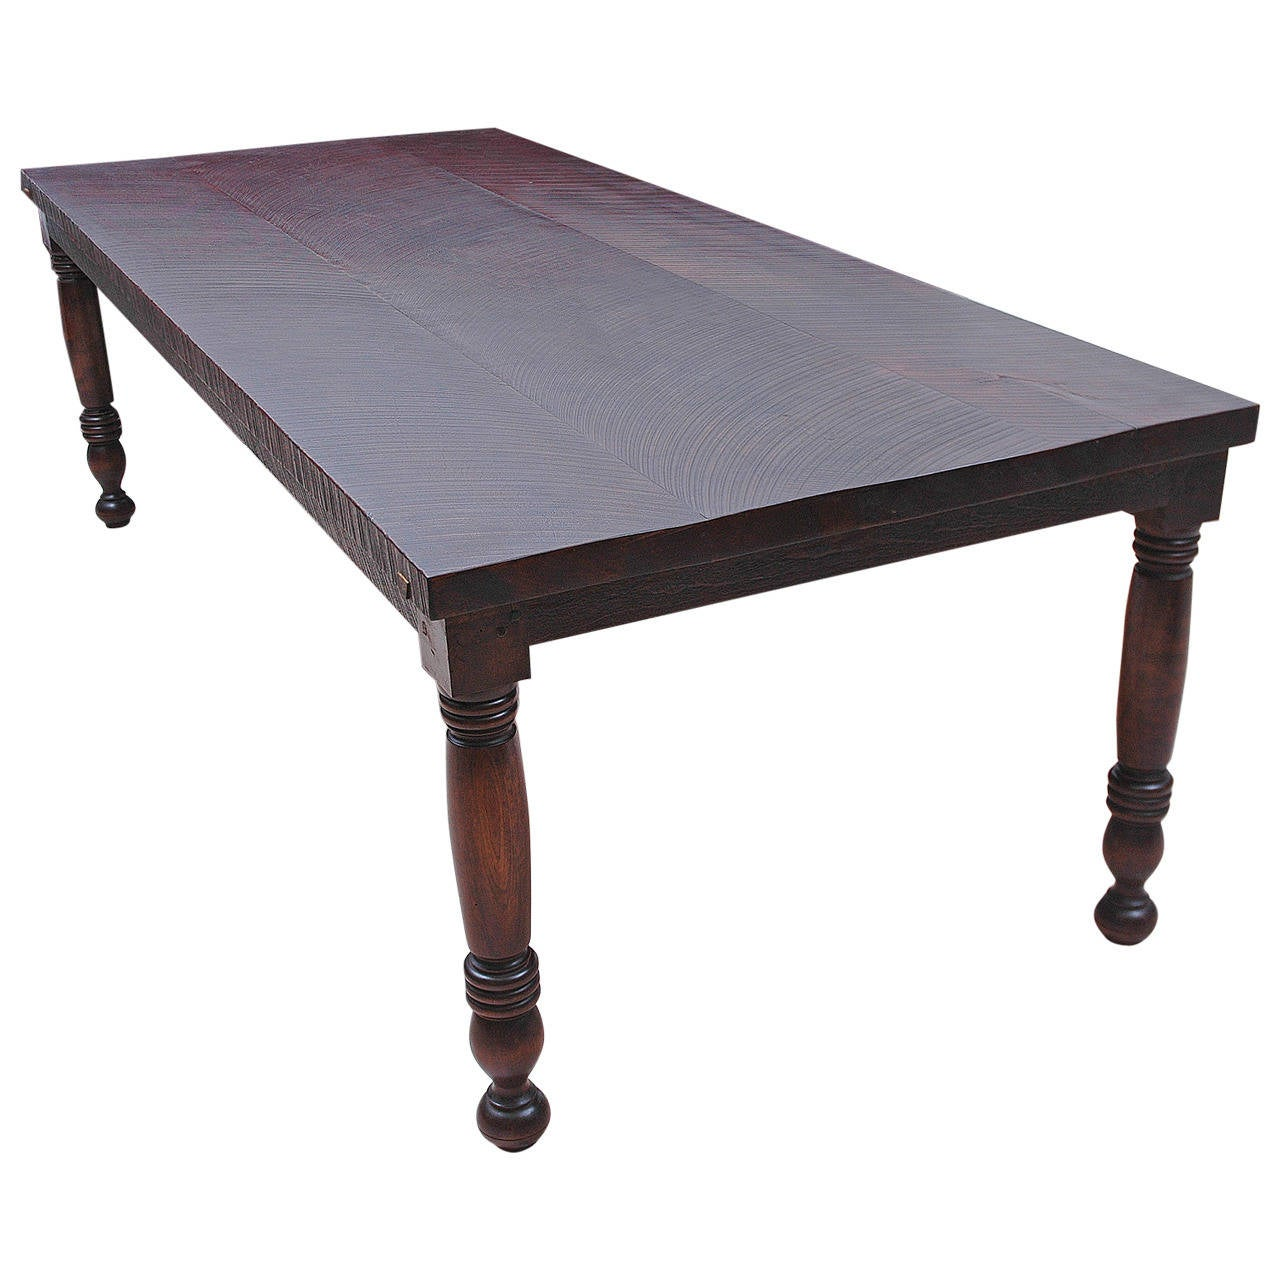 Long Dining Tables For Sale: Long Vintage Farm House Dining Table In Reclaimed Black